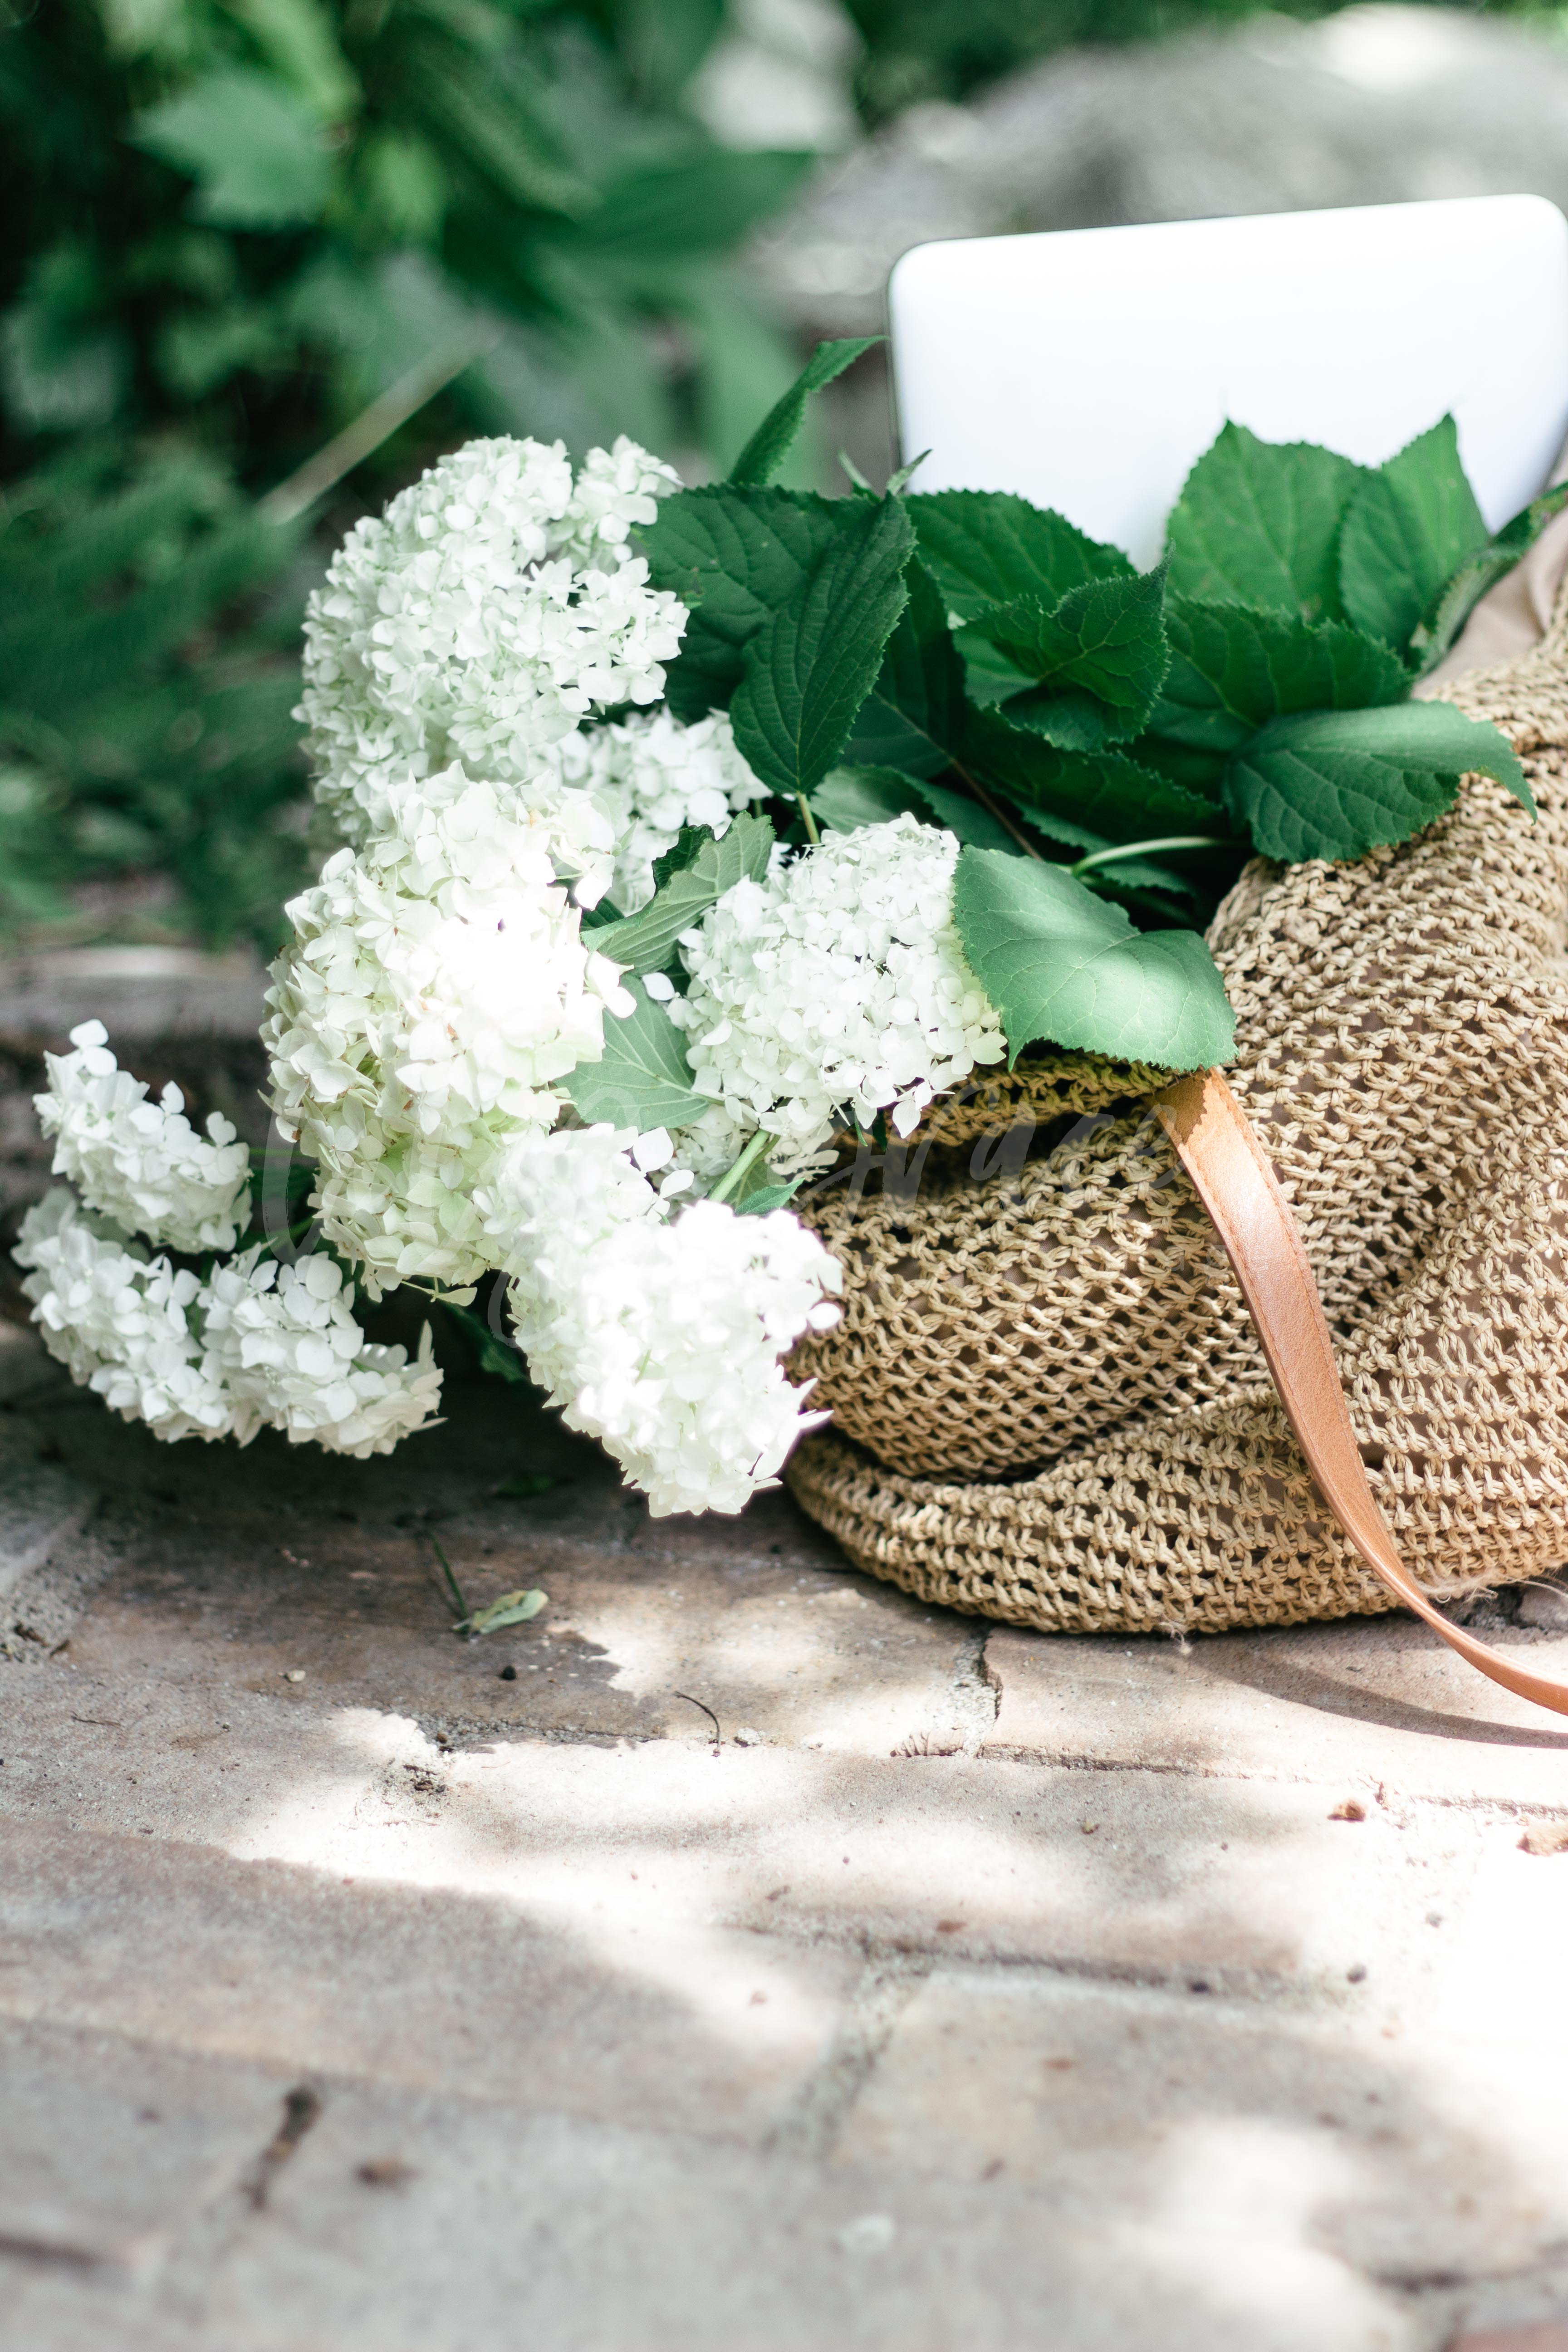 barrie stock photography, barrie, stock photos, photos for instagram, real photos, lilygrace images, toronto stock photography, bag, flowers, white and green, shadows, pond, outdoor stock photos